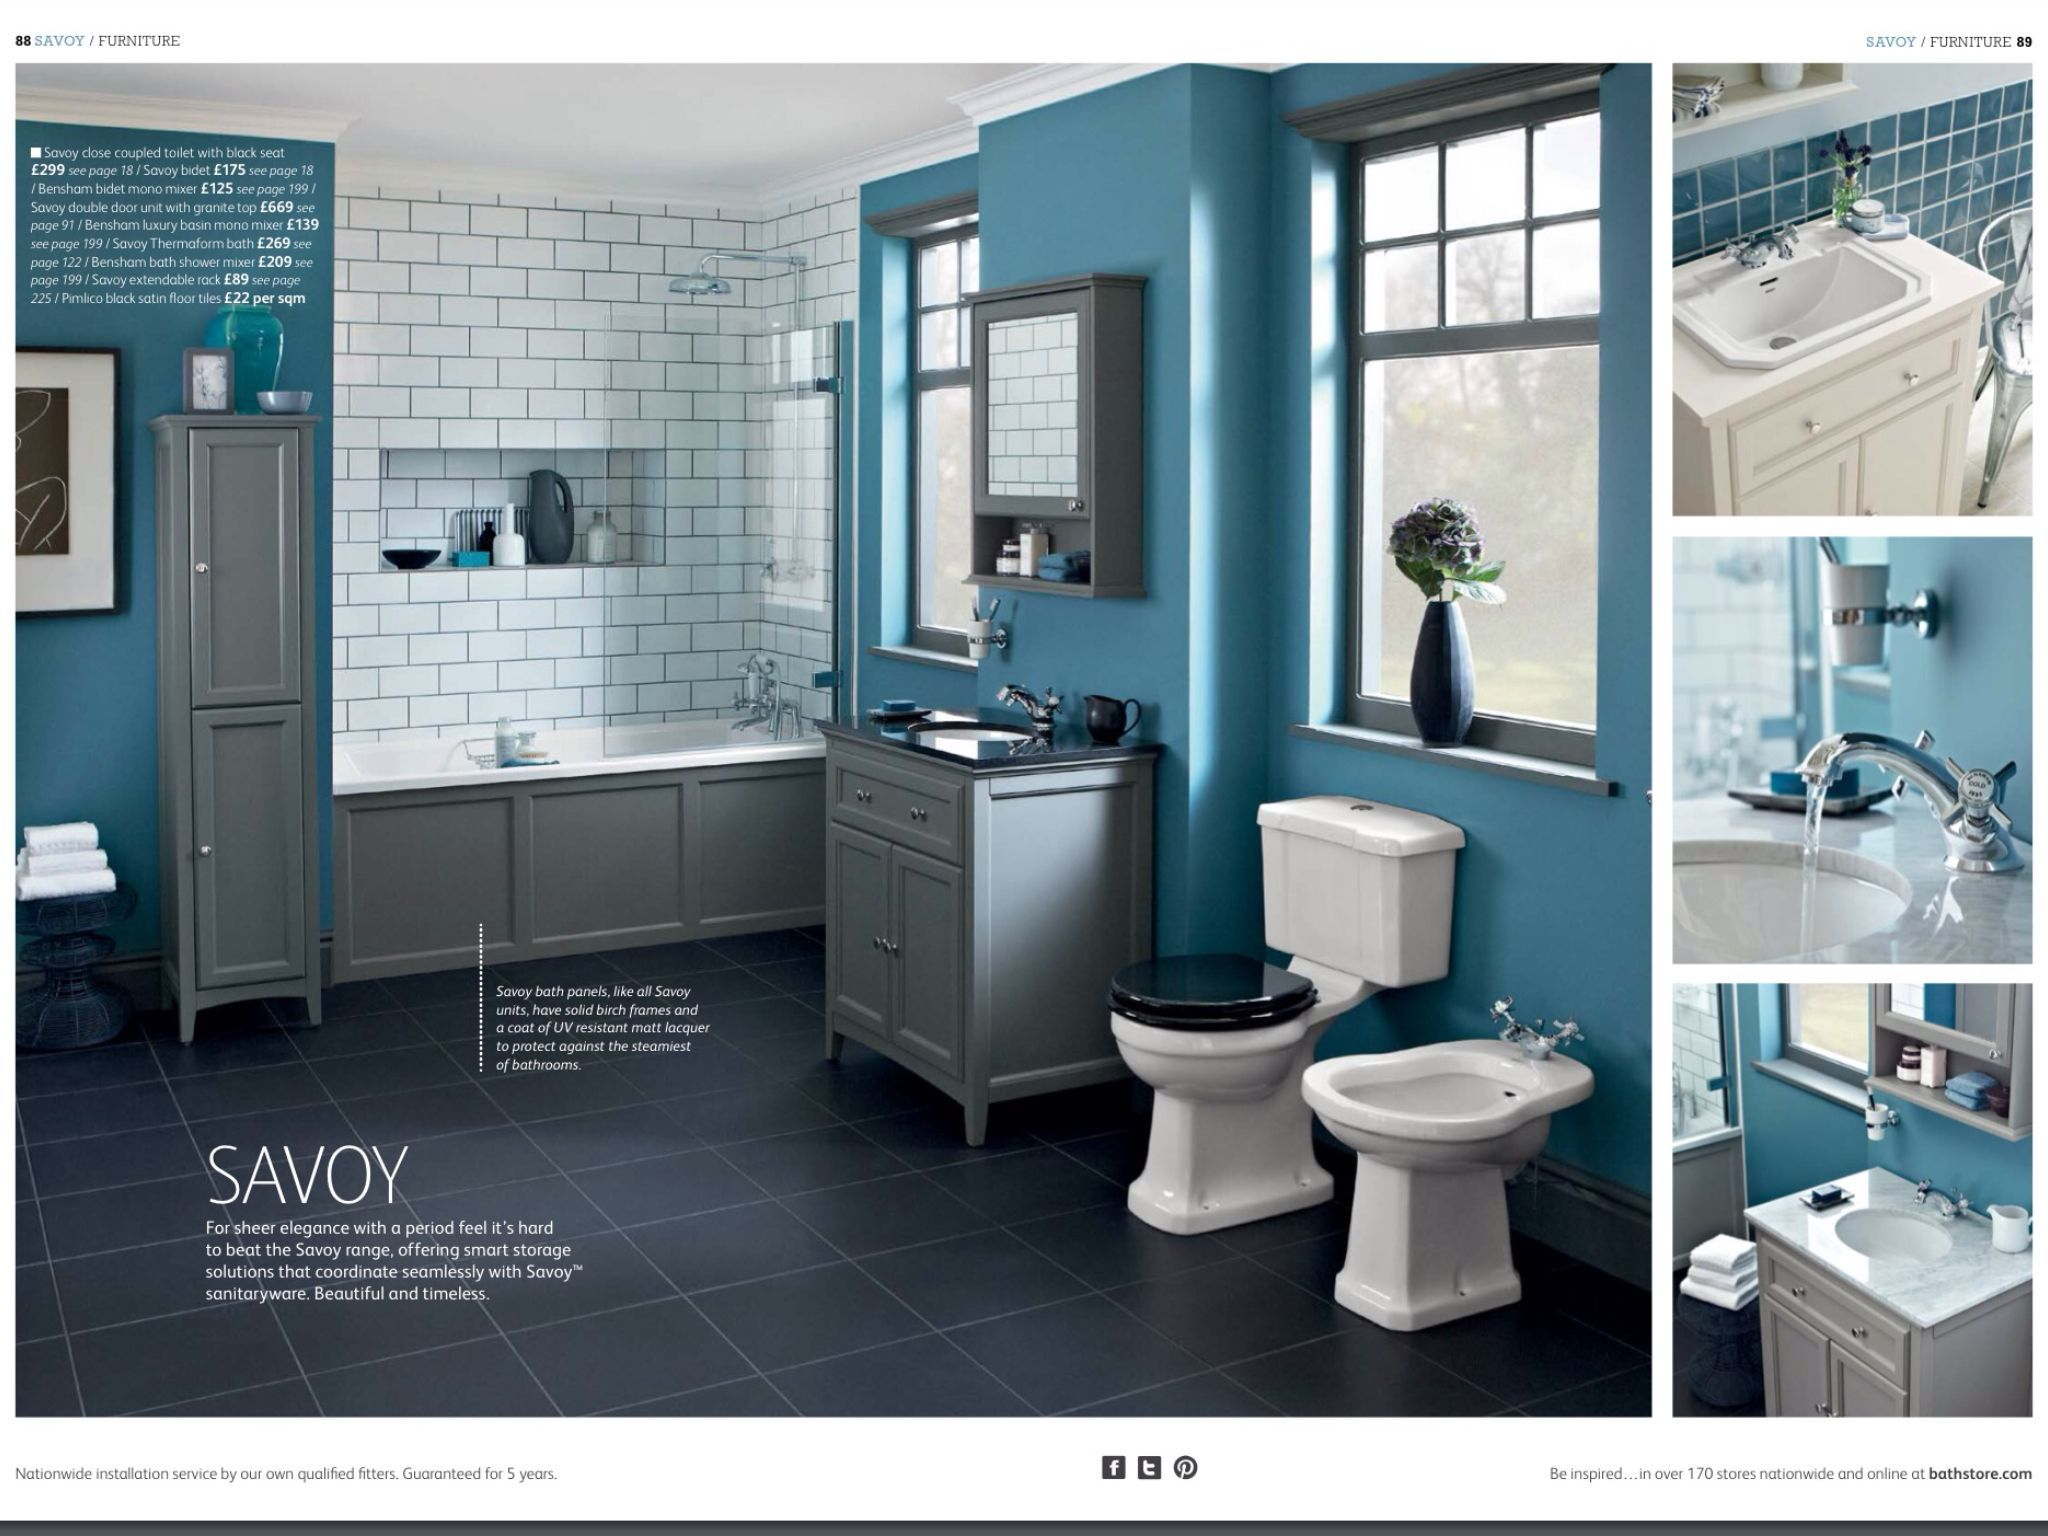 Image result for bathstore savoy | Bathroom inspiration ...